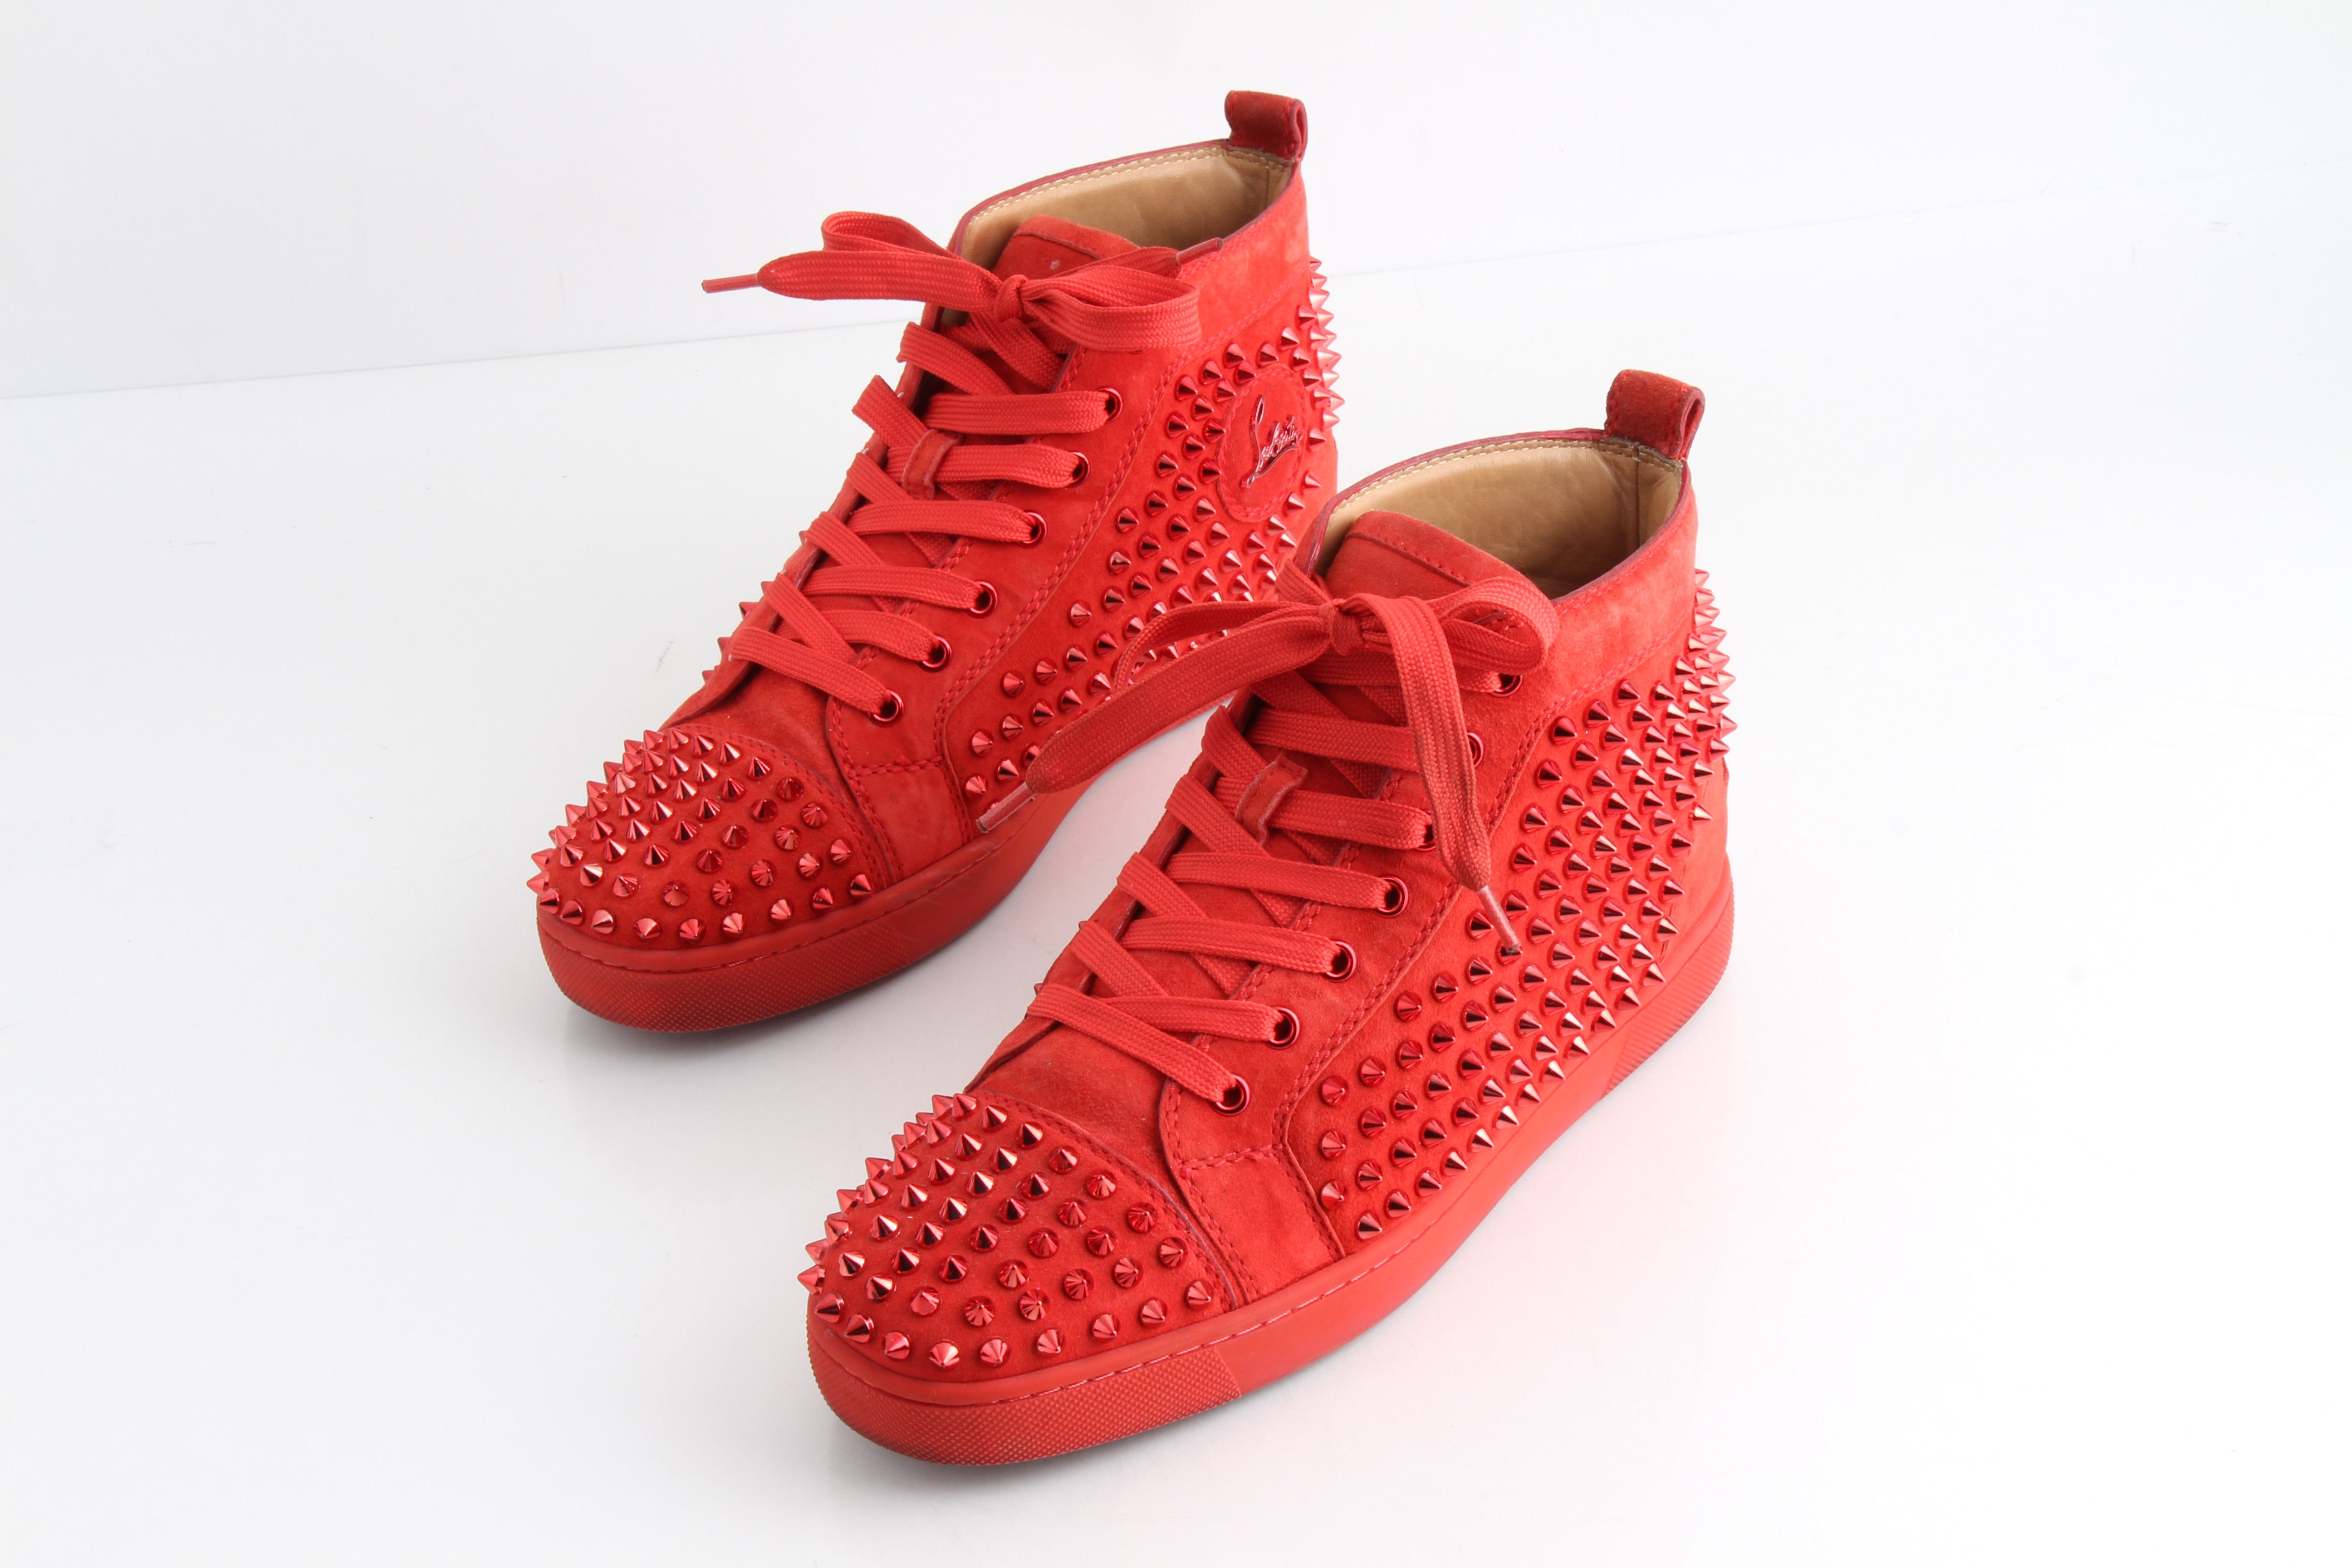 Christian Louboutin Red Spiked Flat